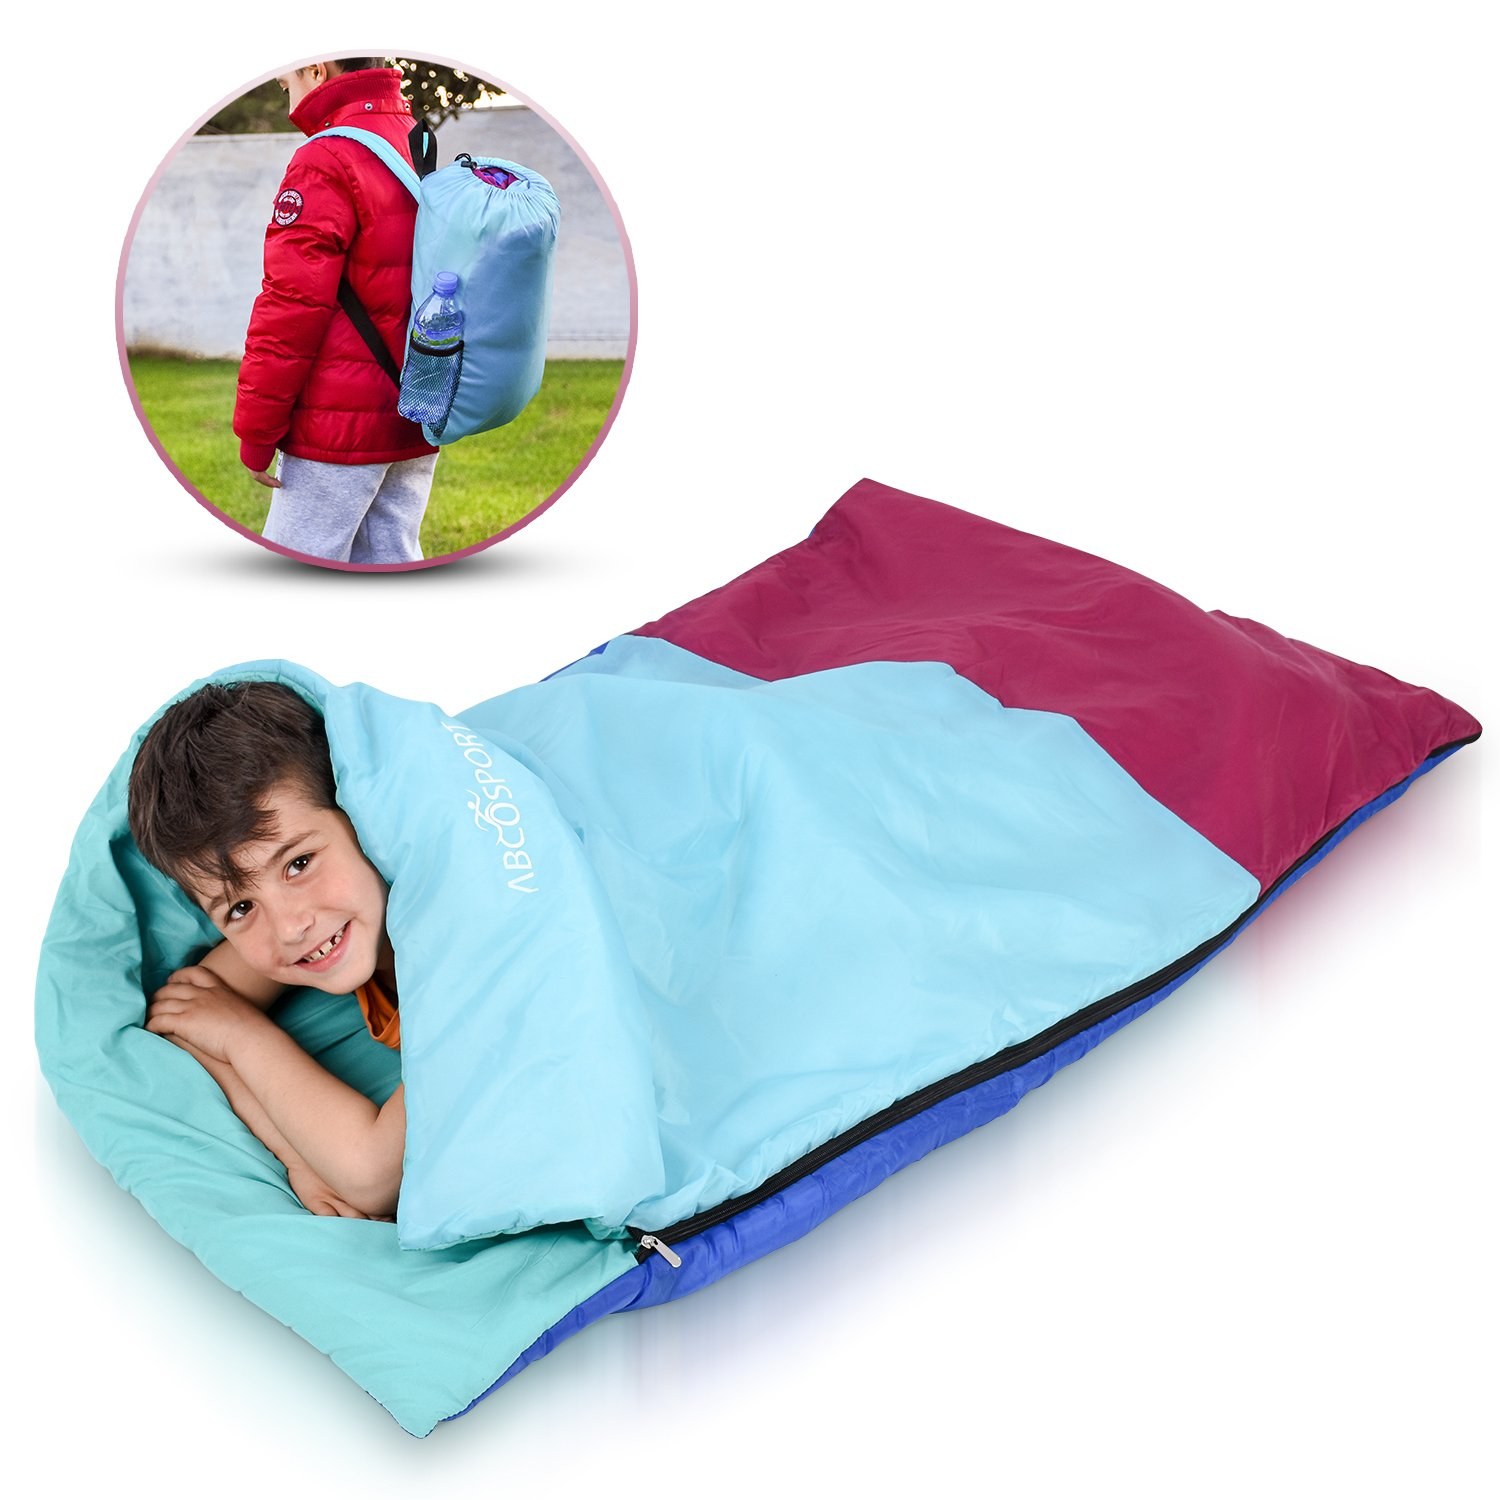 Abco Tech Kids or Children's Junior Sleeping Bags – Polyester Ultralight Sleeping Bag for Camping & Hiking – Withstands Extreme Temp. of 32-60°F – Includes Backpack for Storage & Carrying by Abco Tech